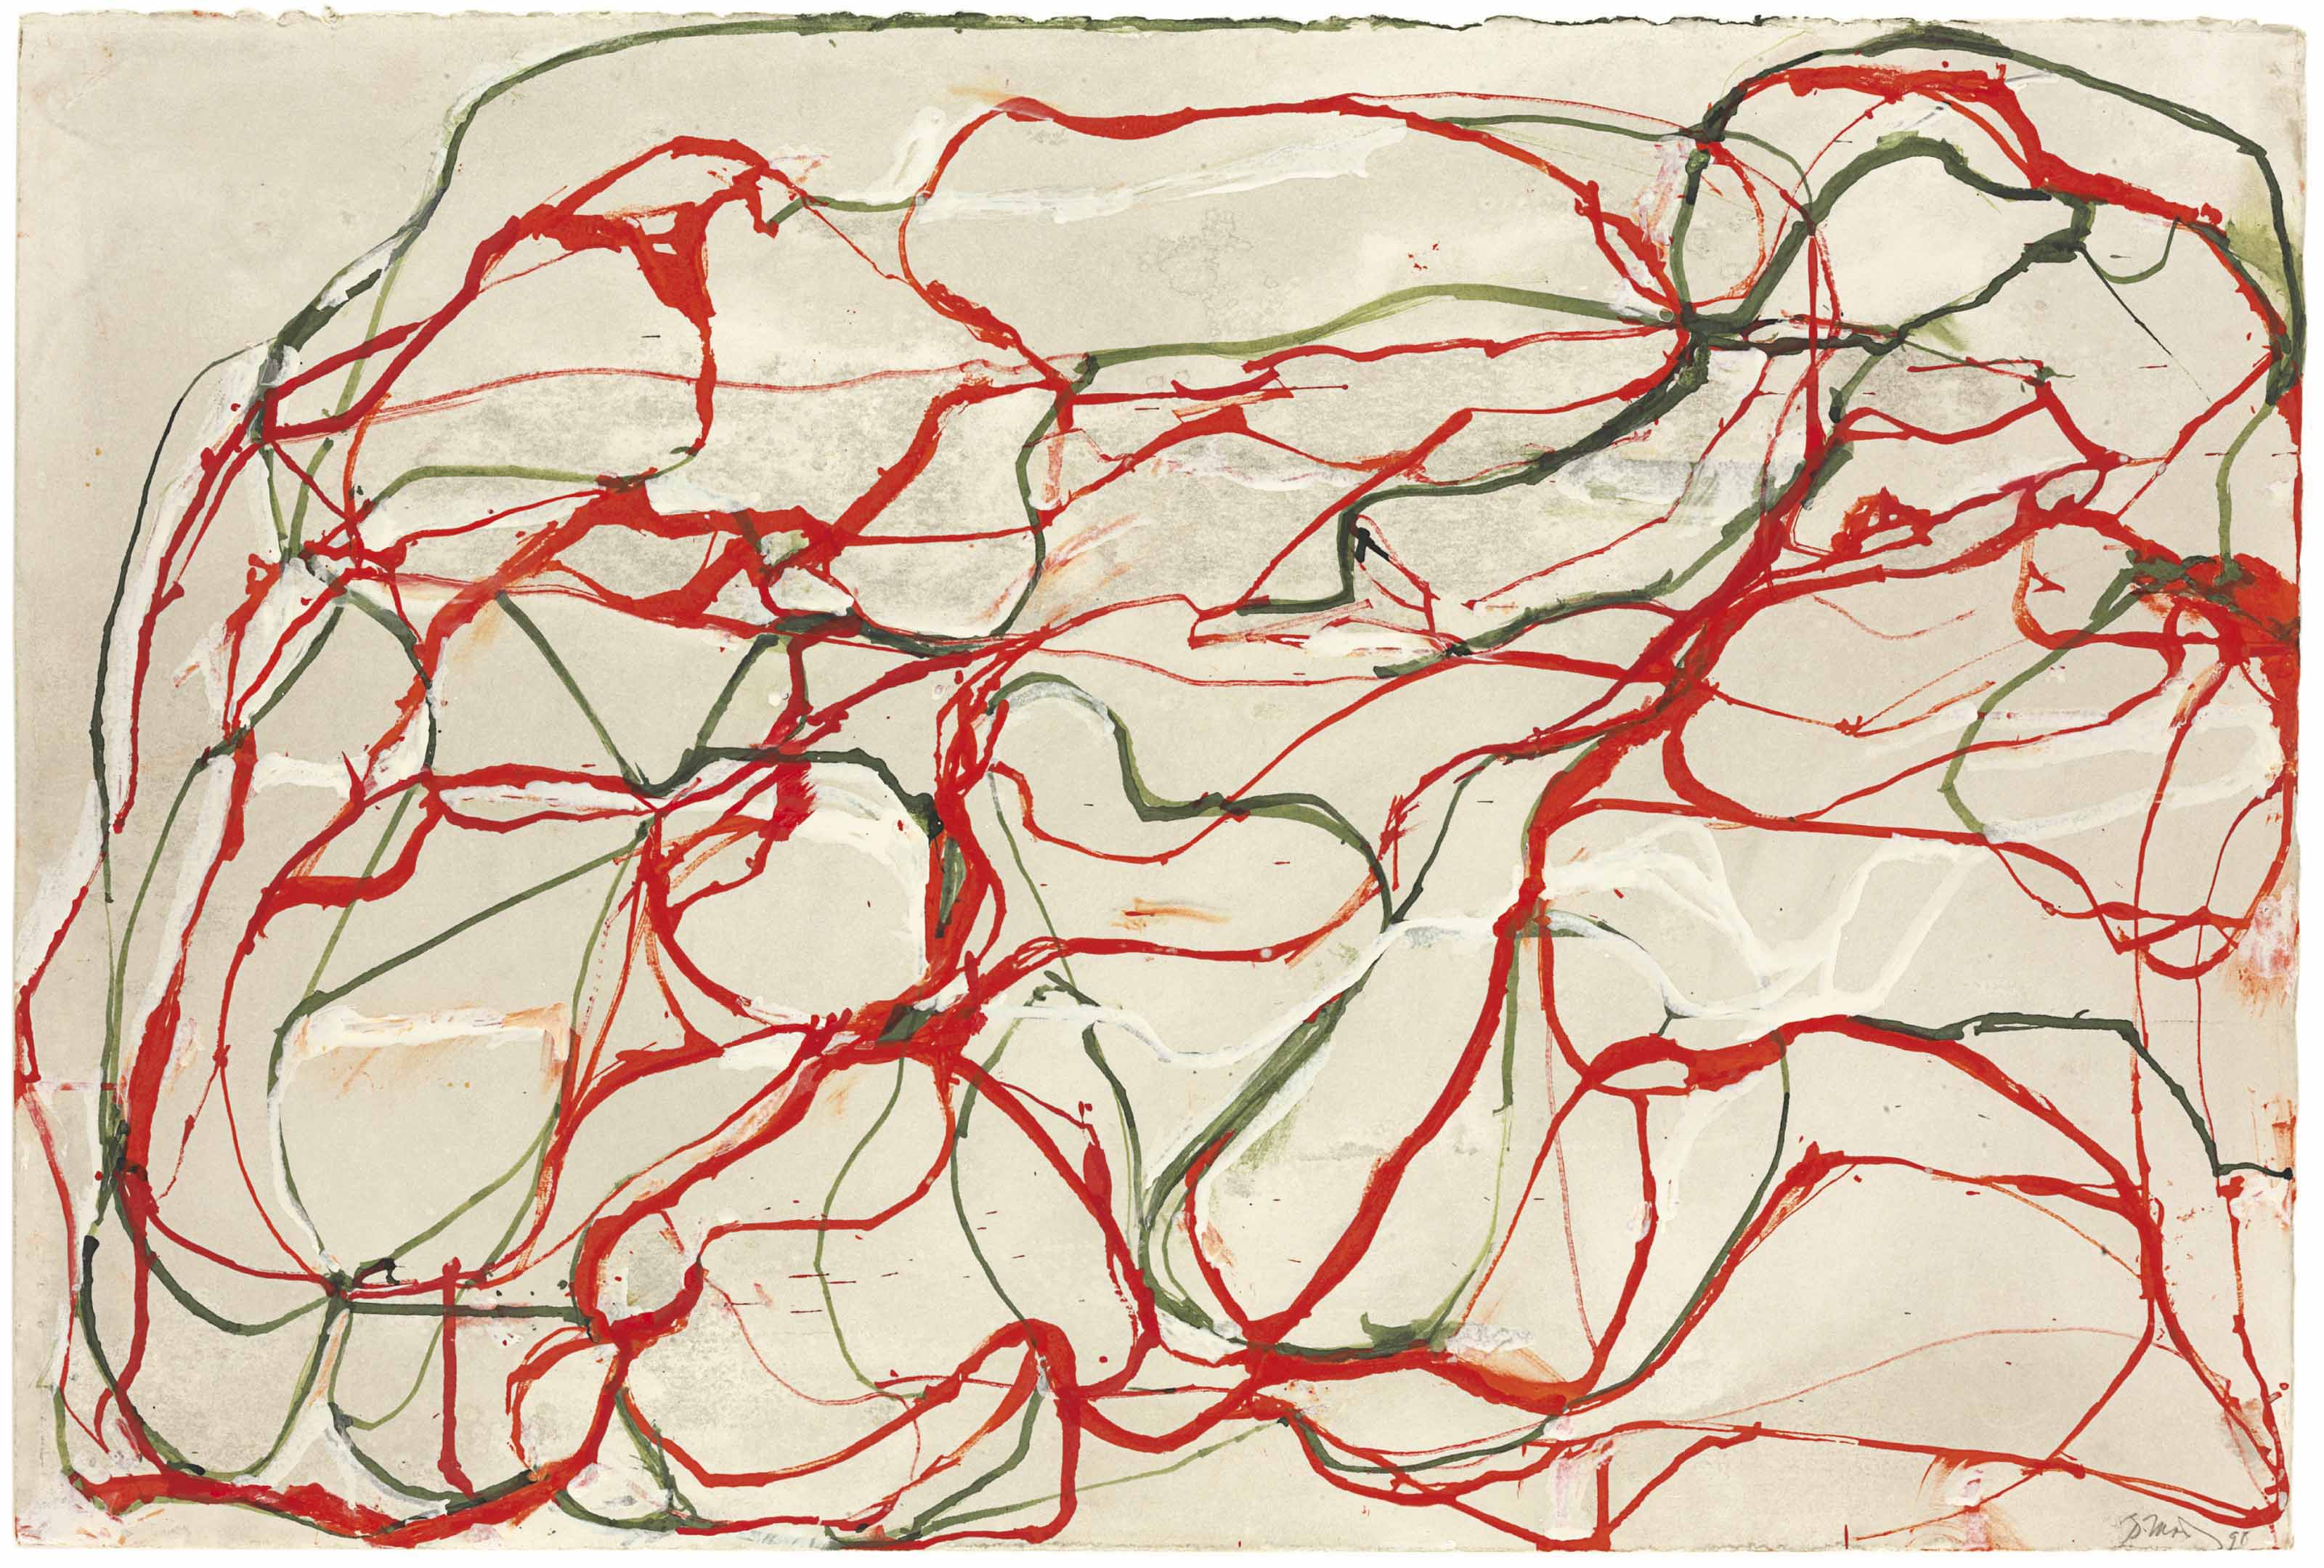 Untitled Red and Green Drawing 2